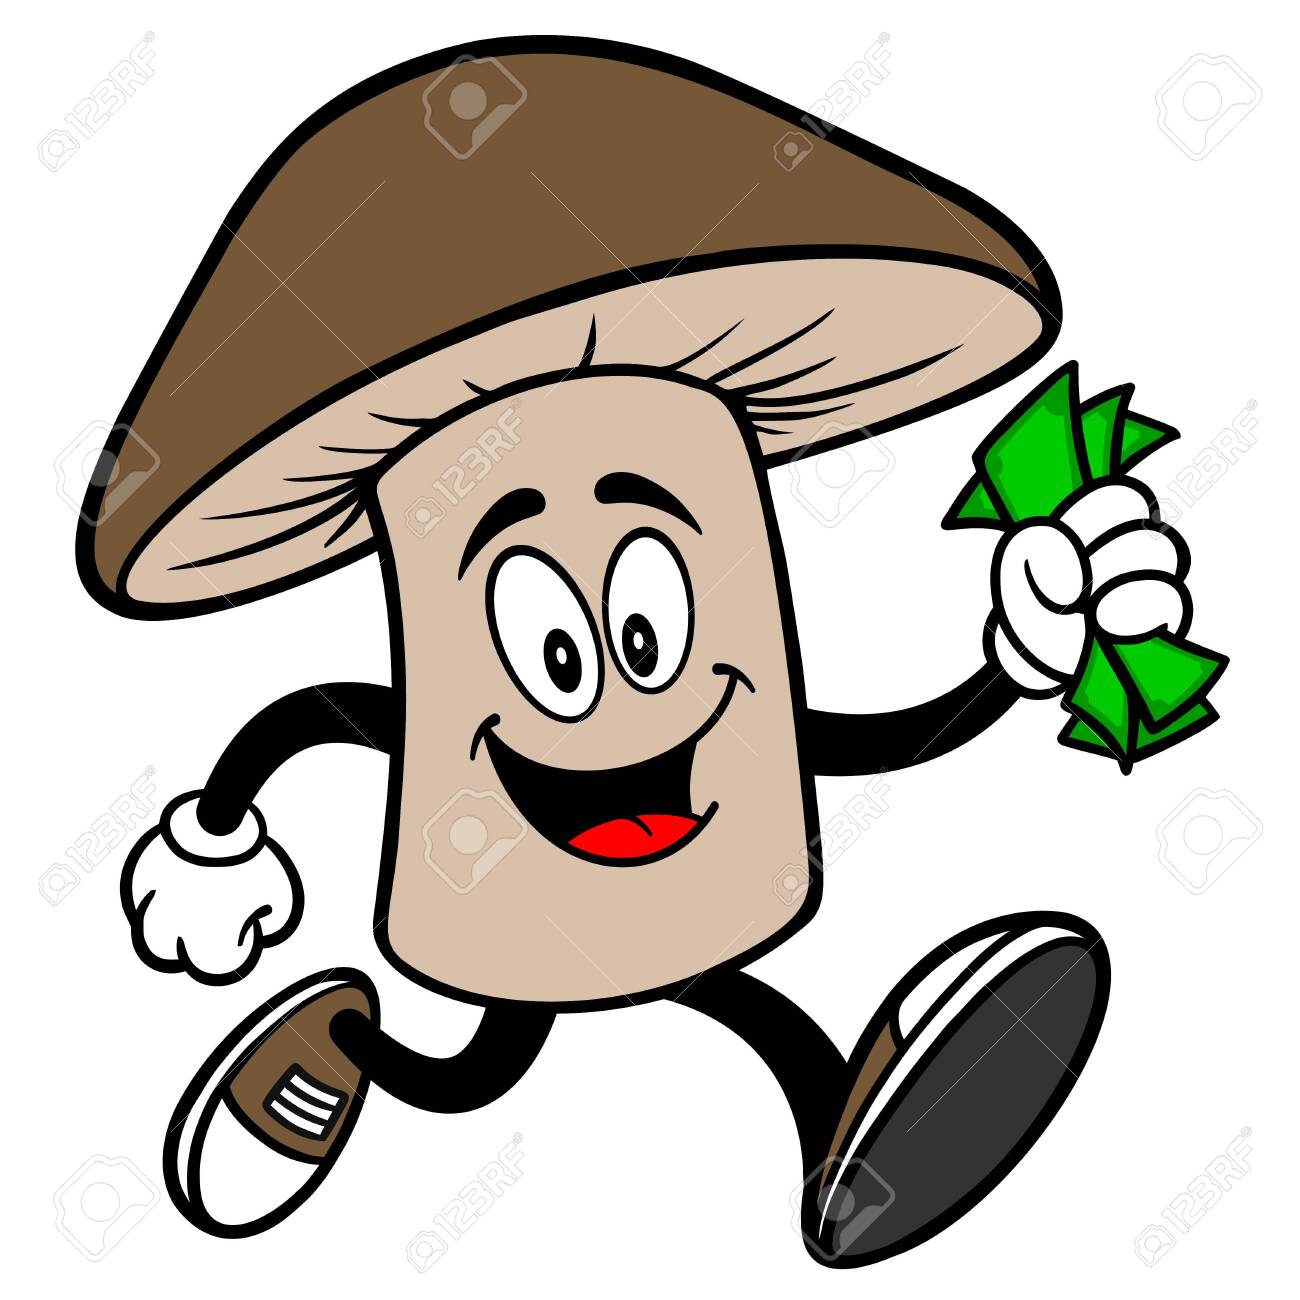 Electrical Hair Clipper Mascot Running With Money - A Vector.. Royalty Free  Cliparts, Vectors, And Stock Illustration. Image 120067352.